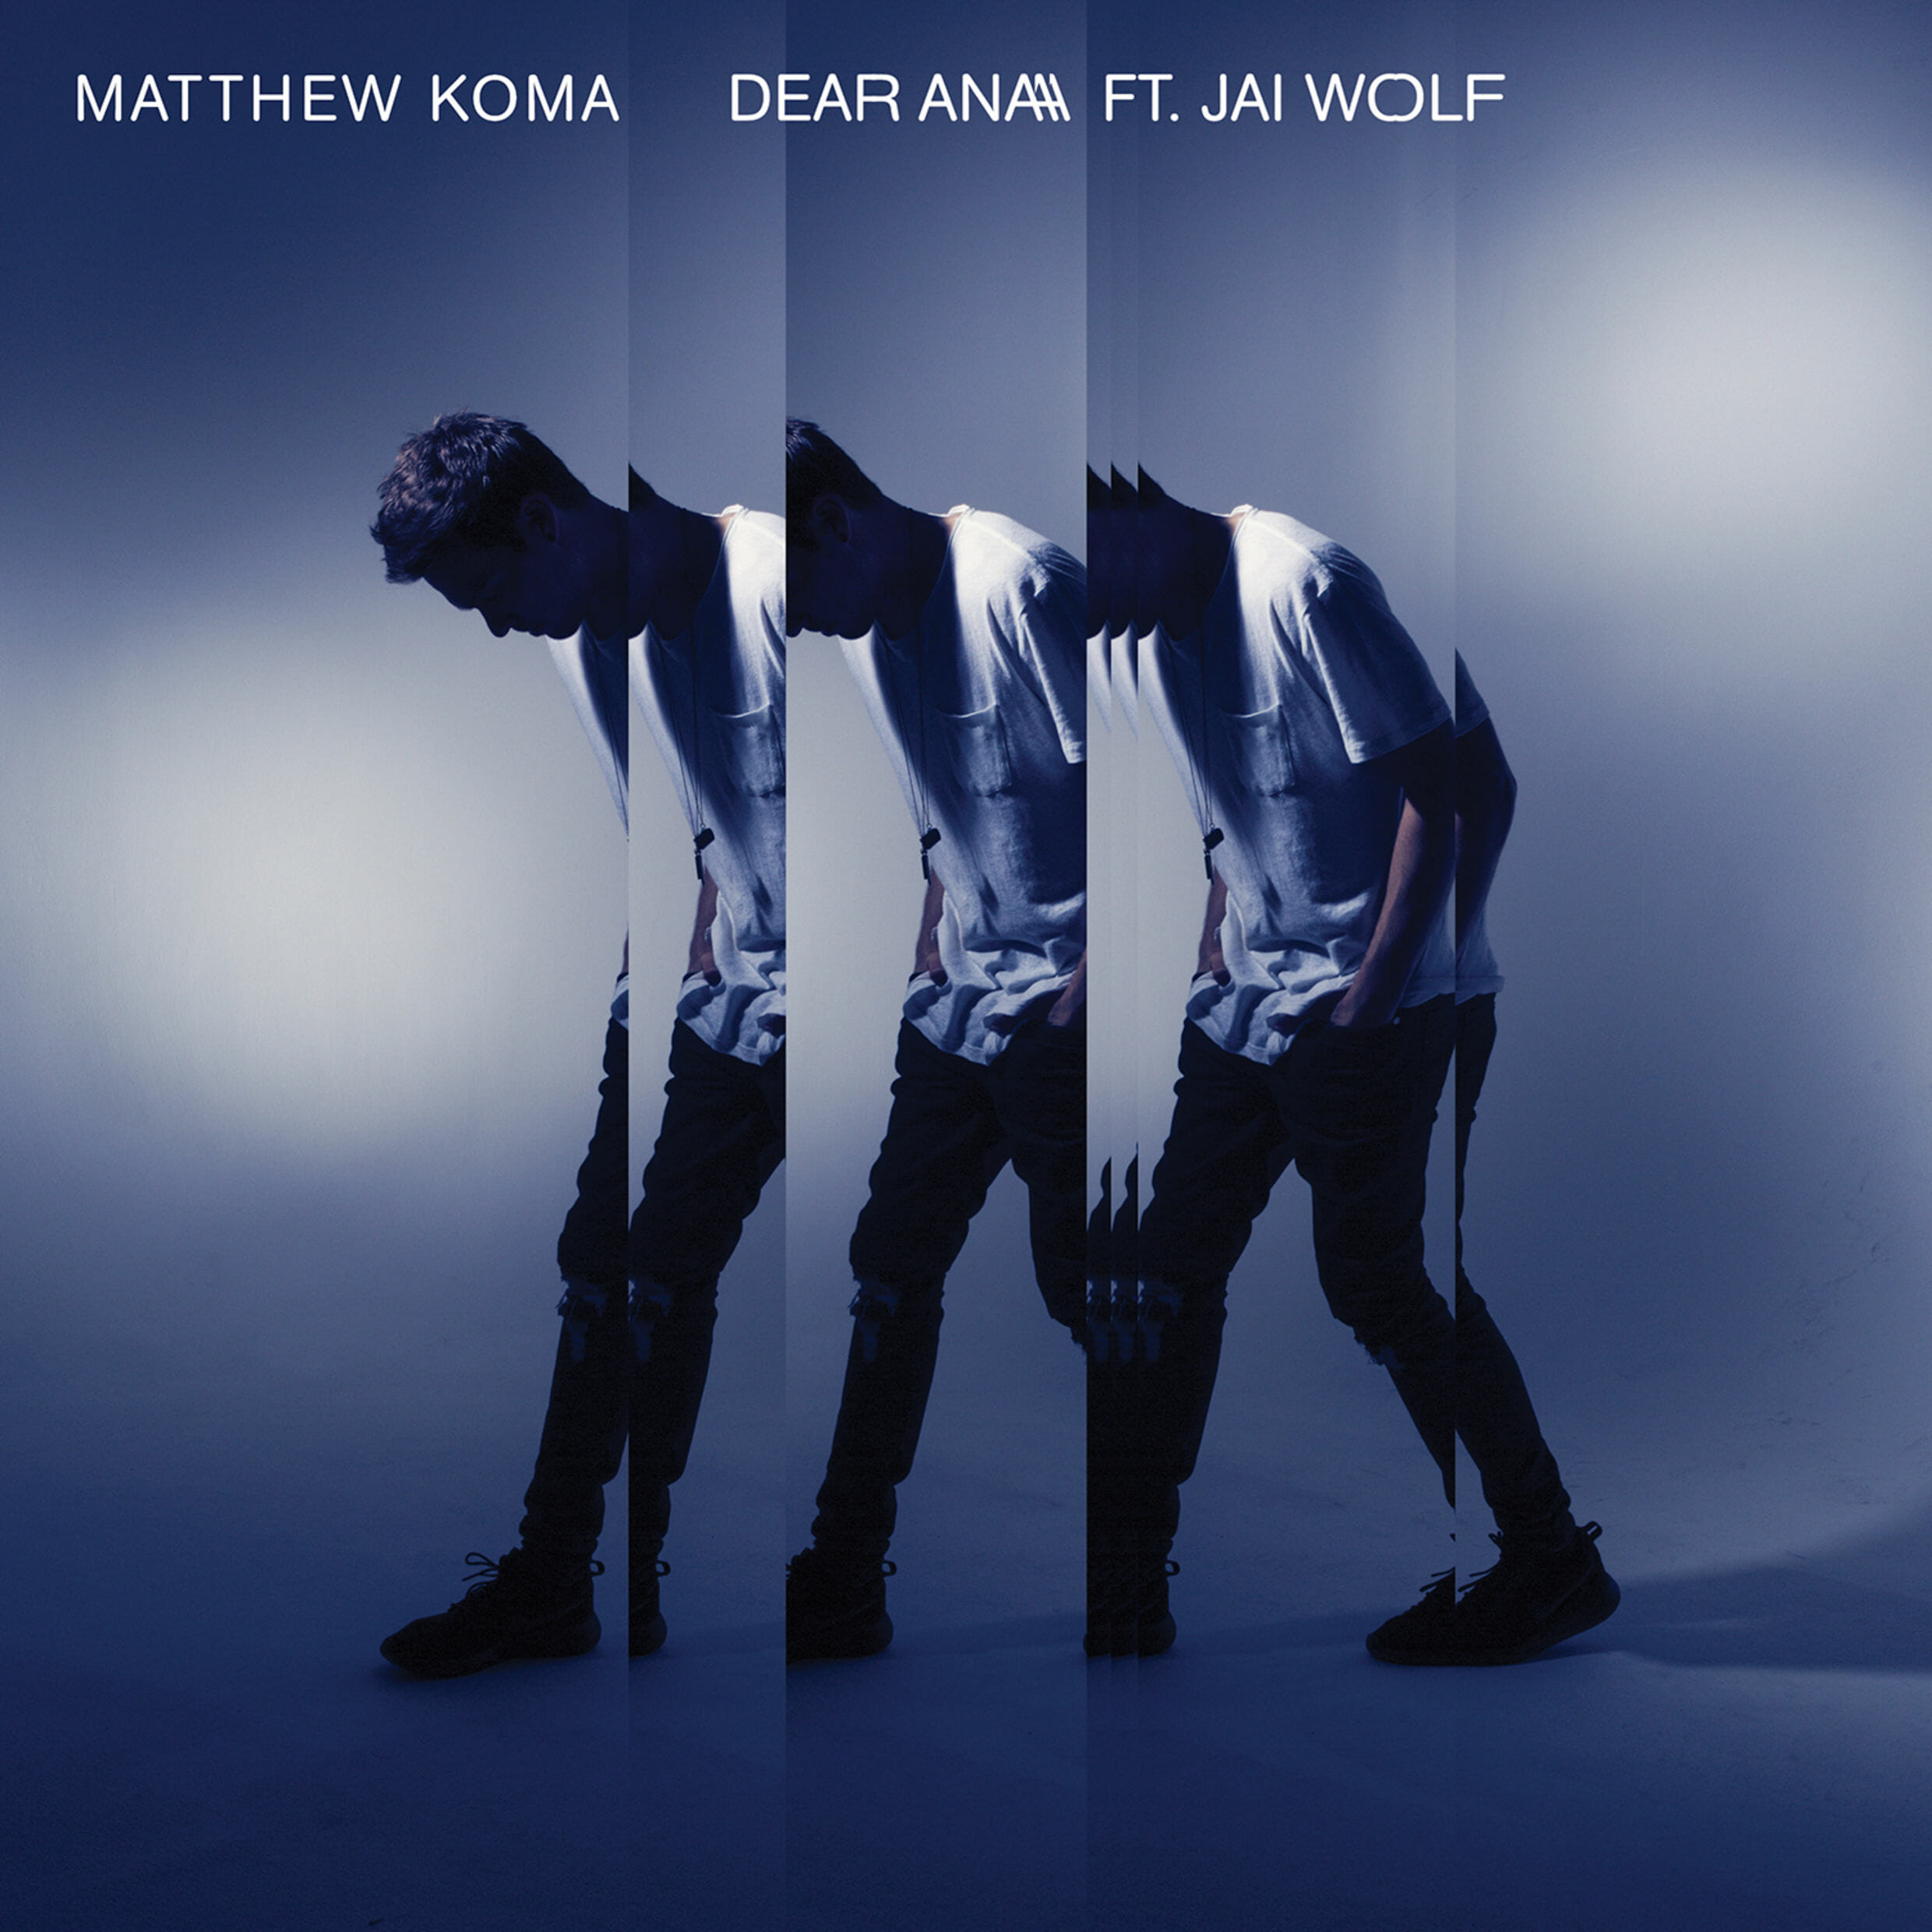 Matthew Koma opens up about eating disorder in 'Dear Ana' featuring Jai WolfKoma